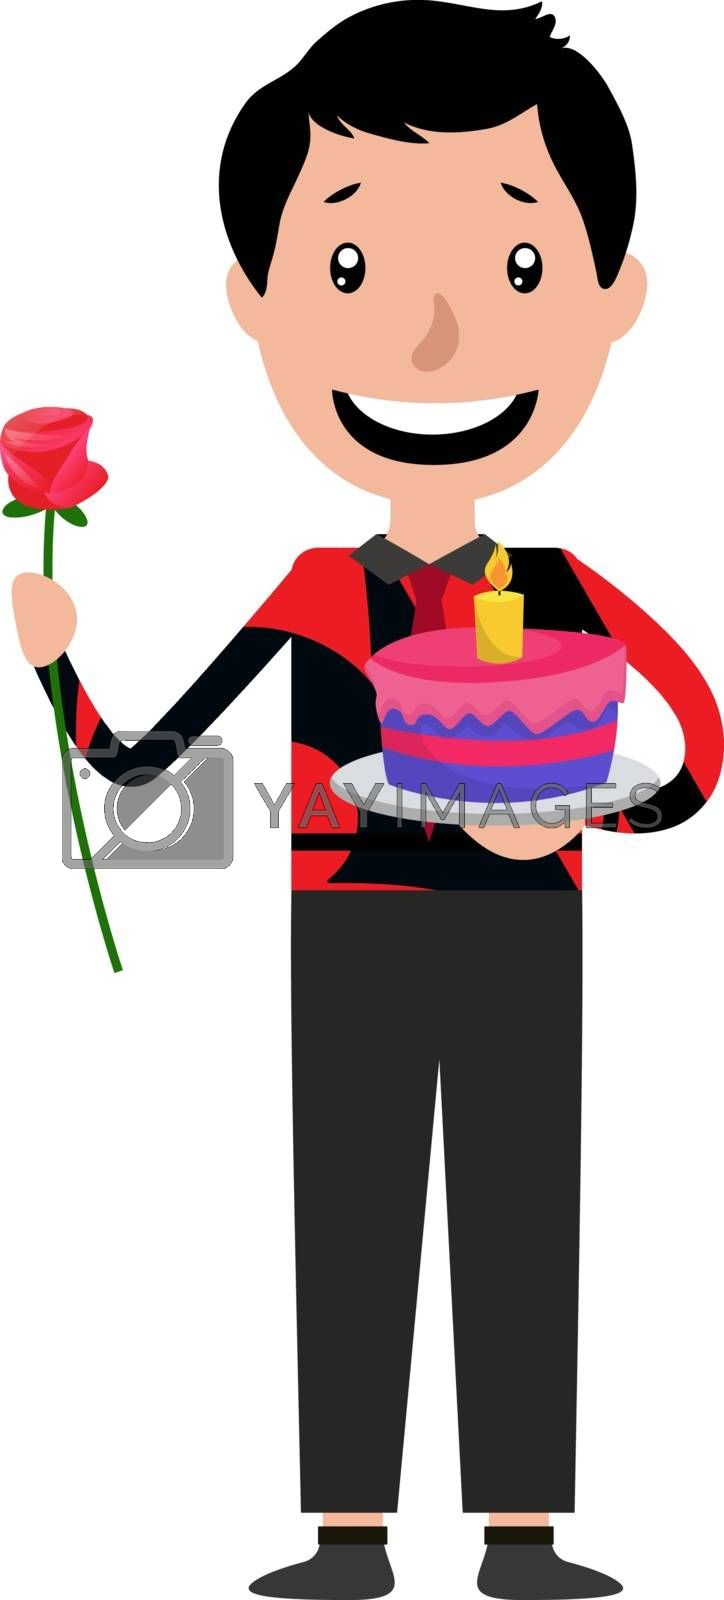 Royalty free image of Cartoon man holding a cake and giving the rose illustration vect by Morphart